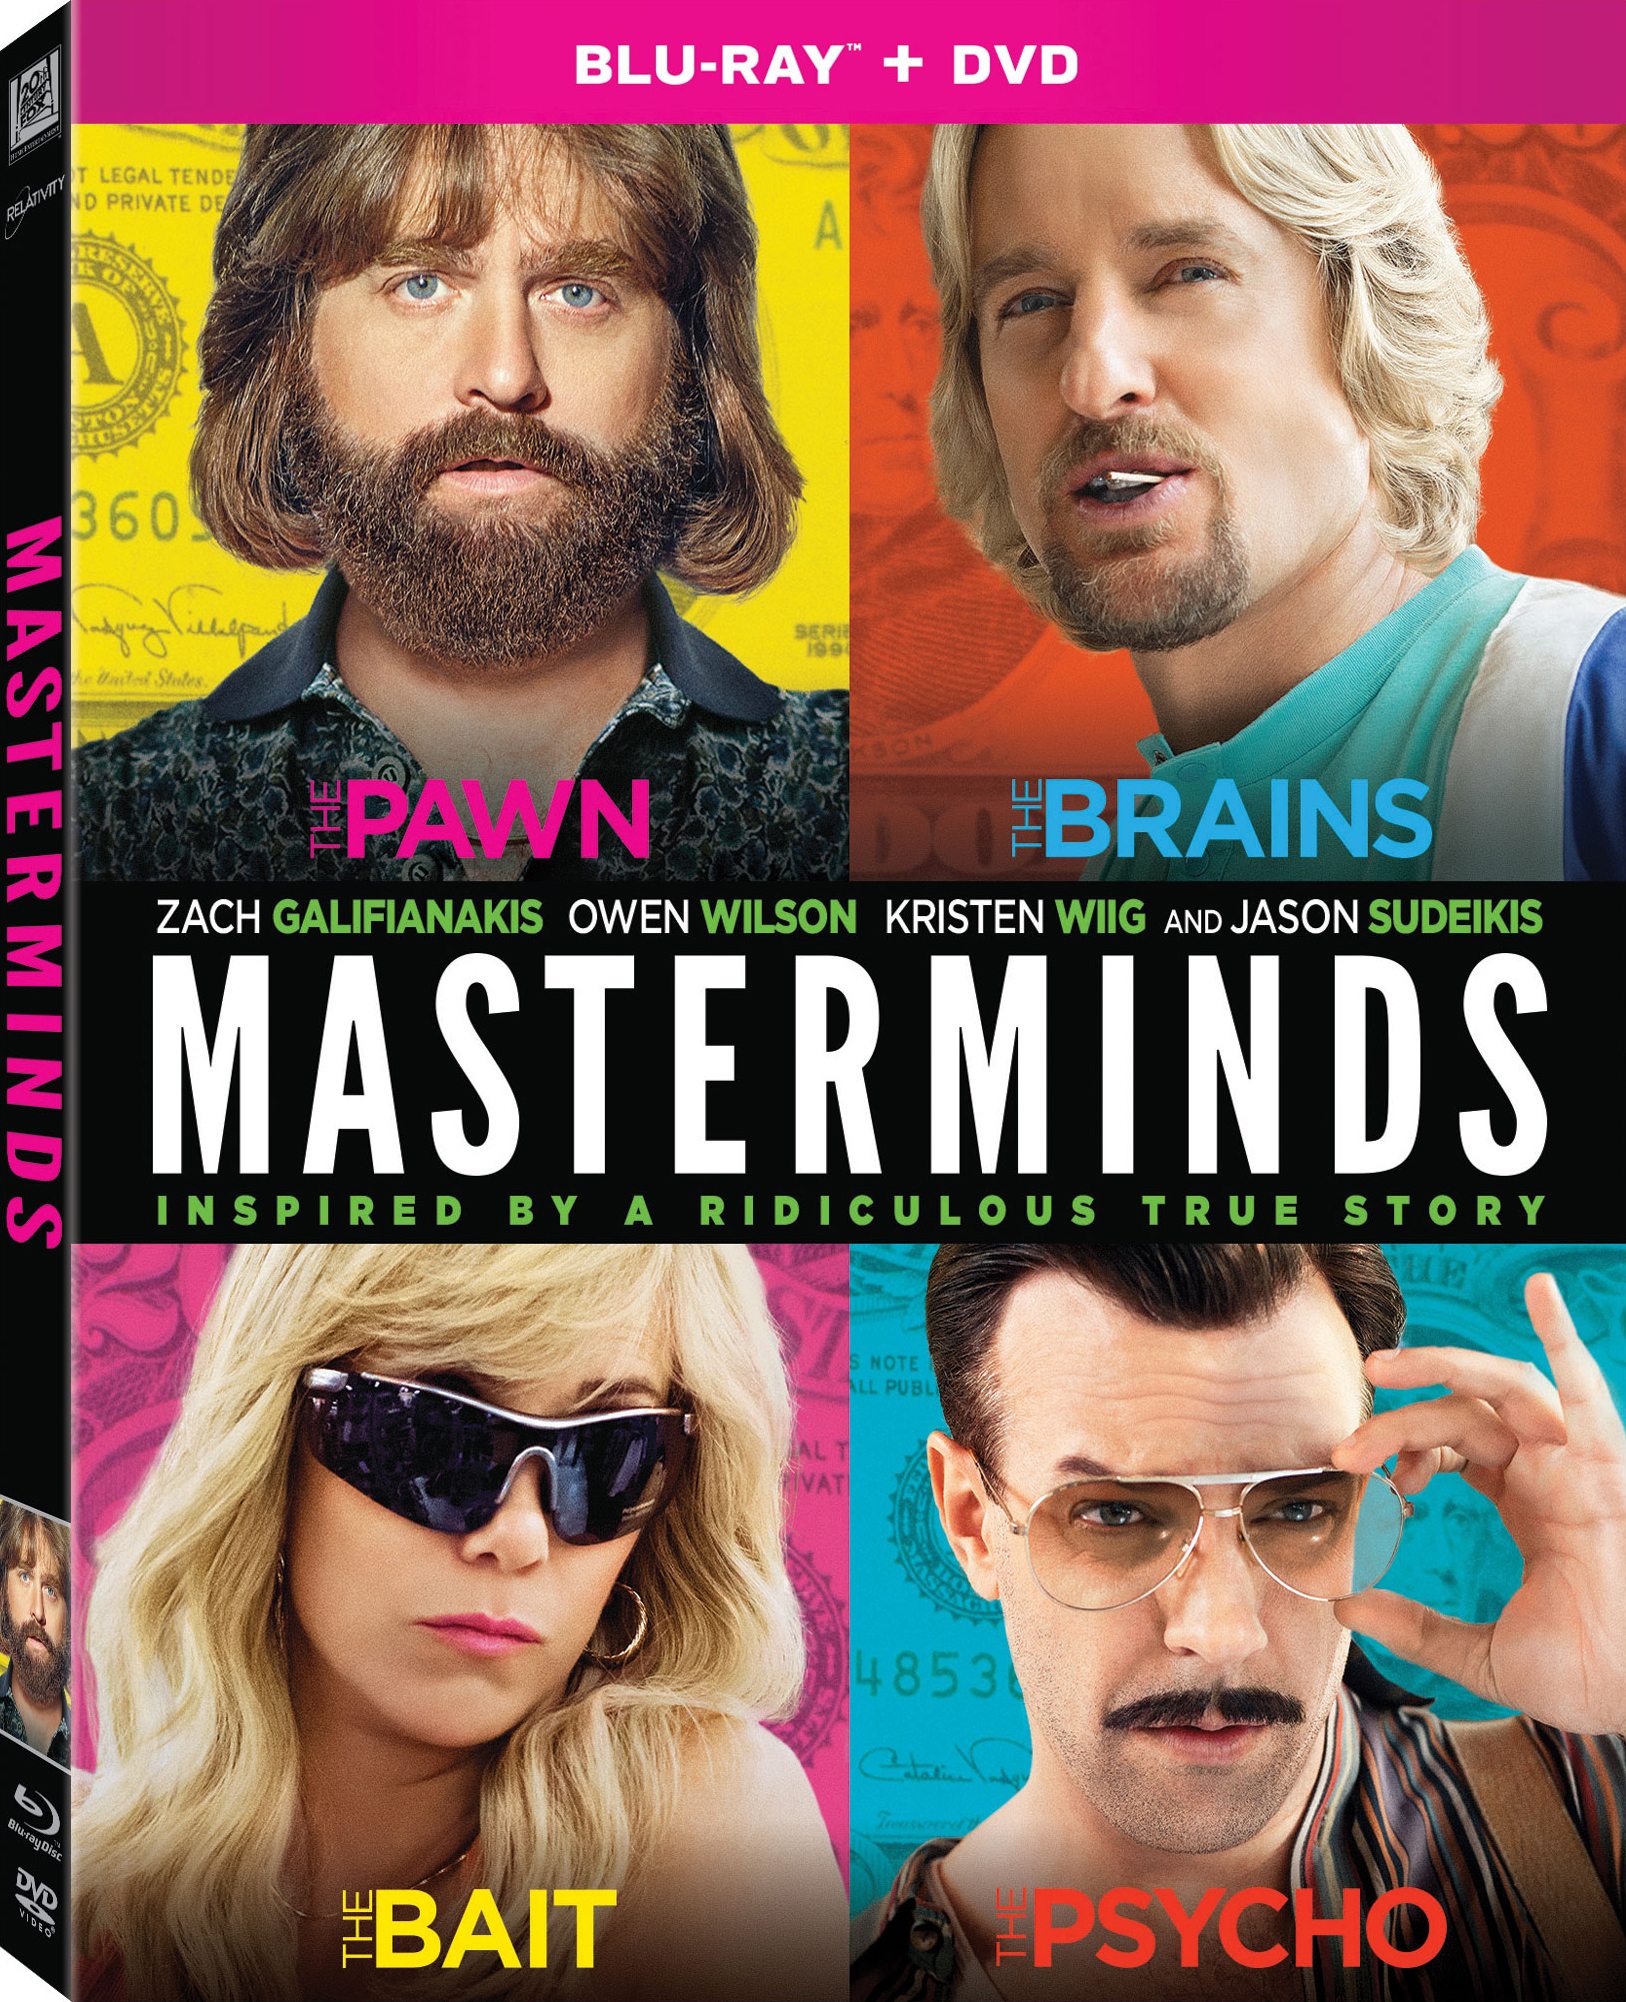 Masterminds (2016) poster image